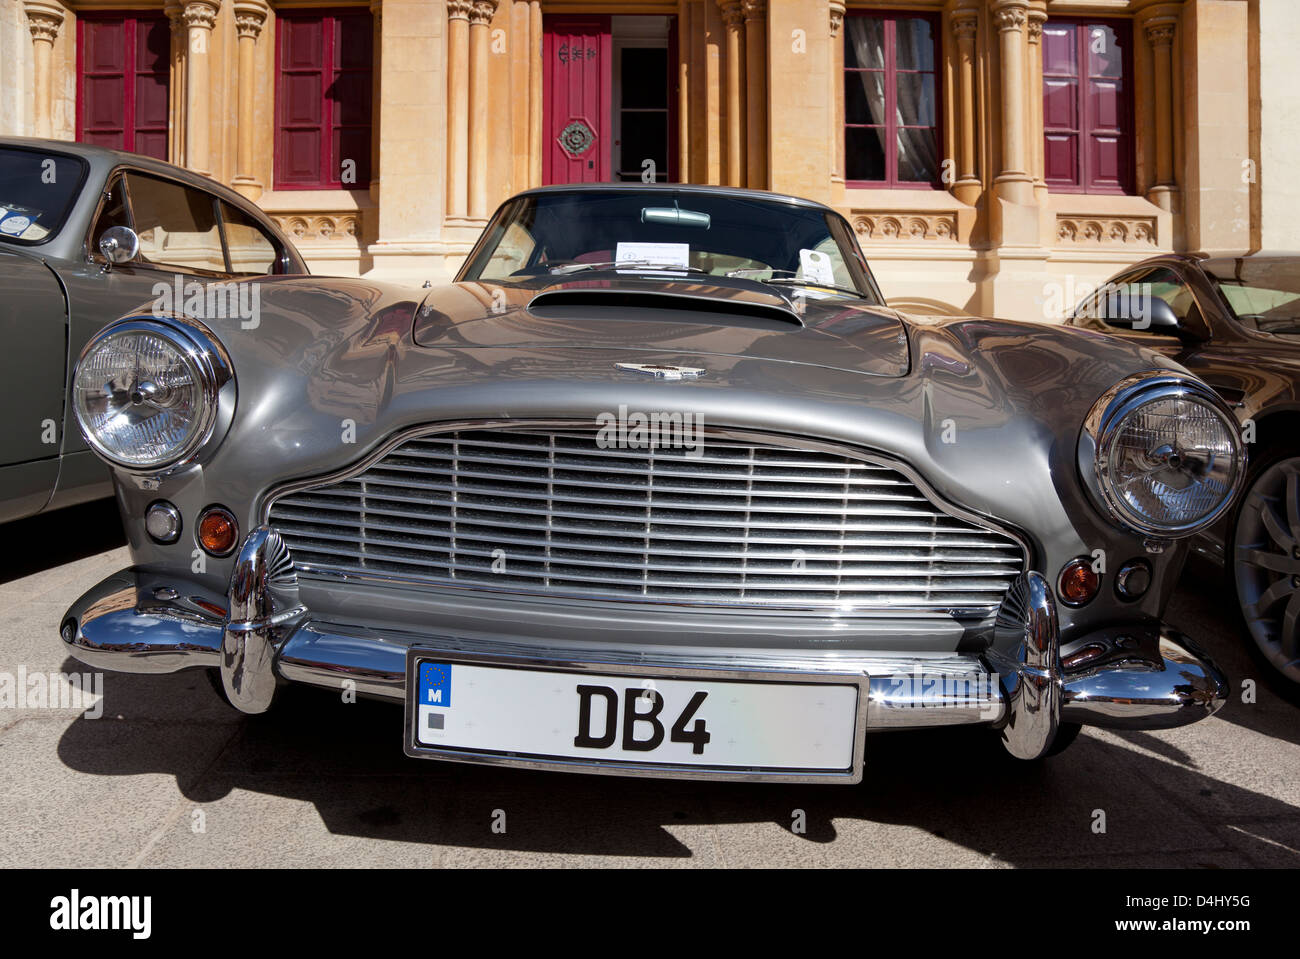 Classic cars on show in st pauls square mdina malta stock photo classic cars on show in st pauls square mdina malta sciox Images